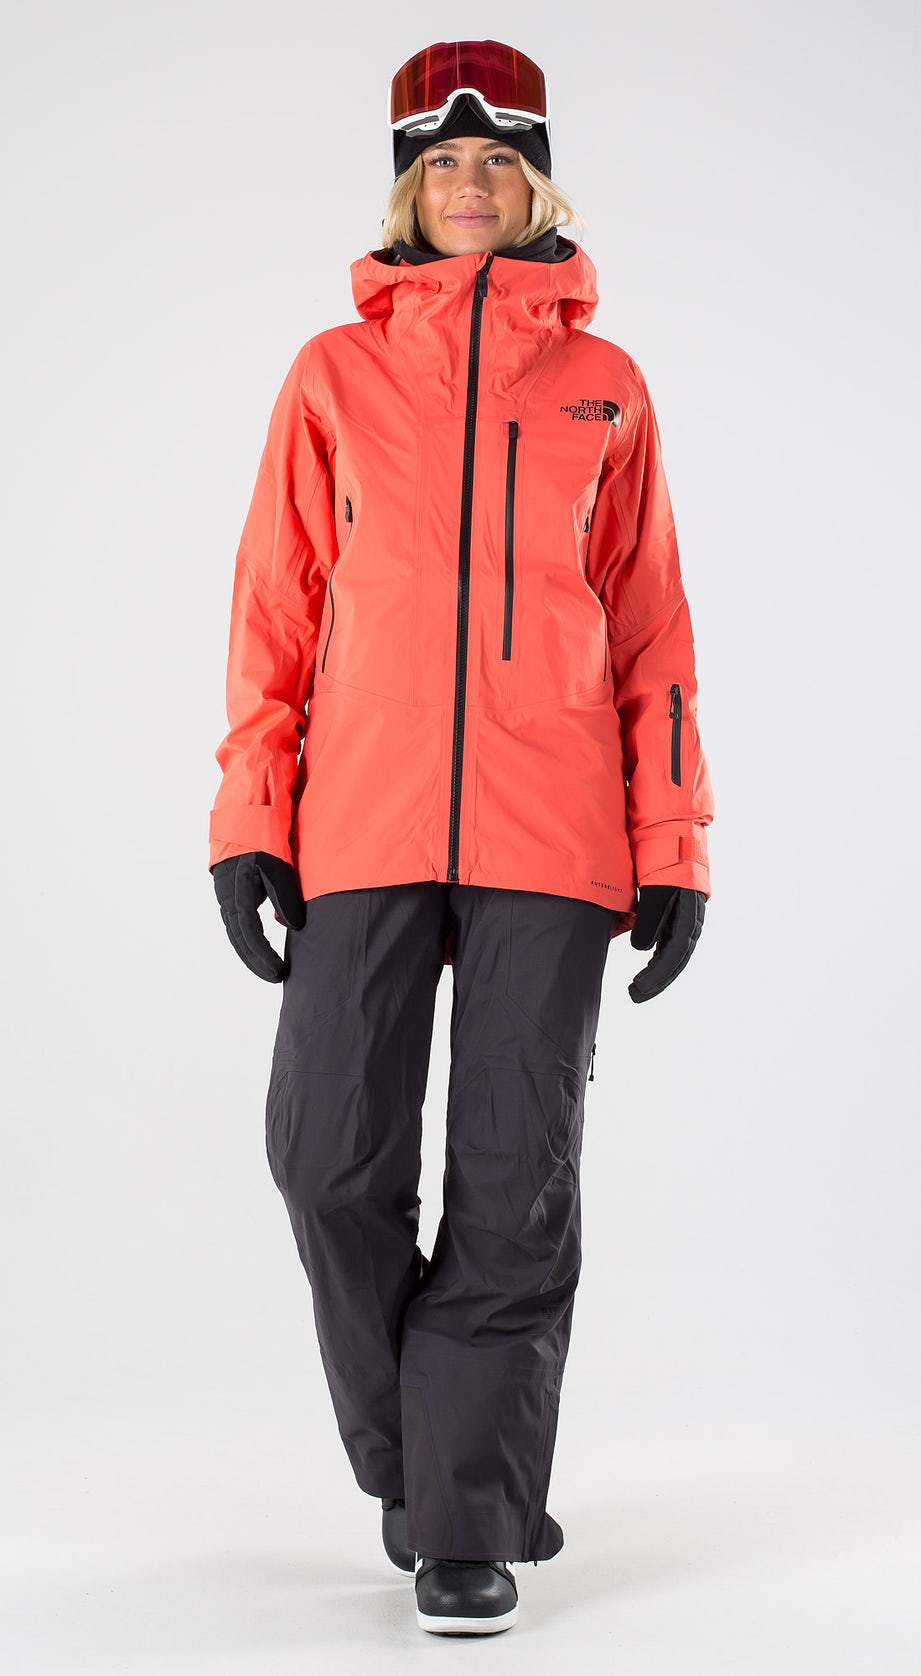 The North Face Free Thinker Radiant Orange Snowboardkleidung Multi